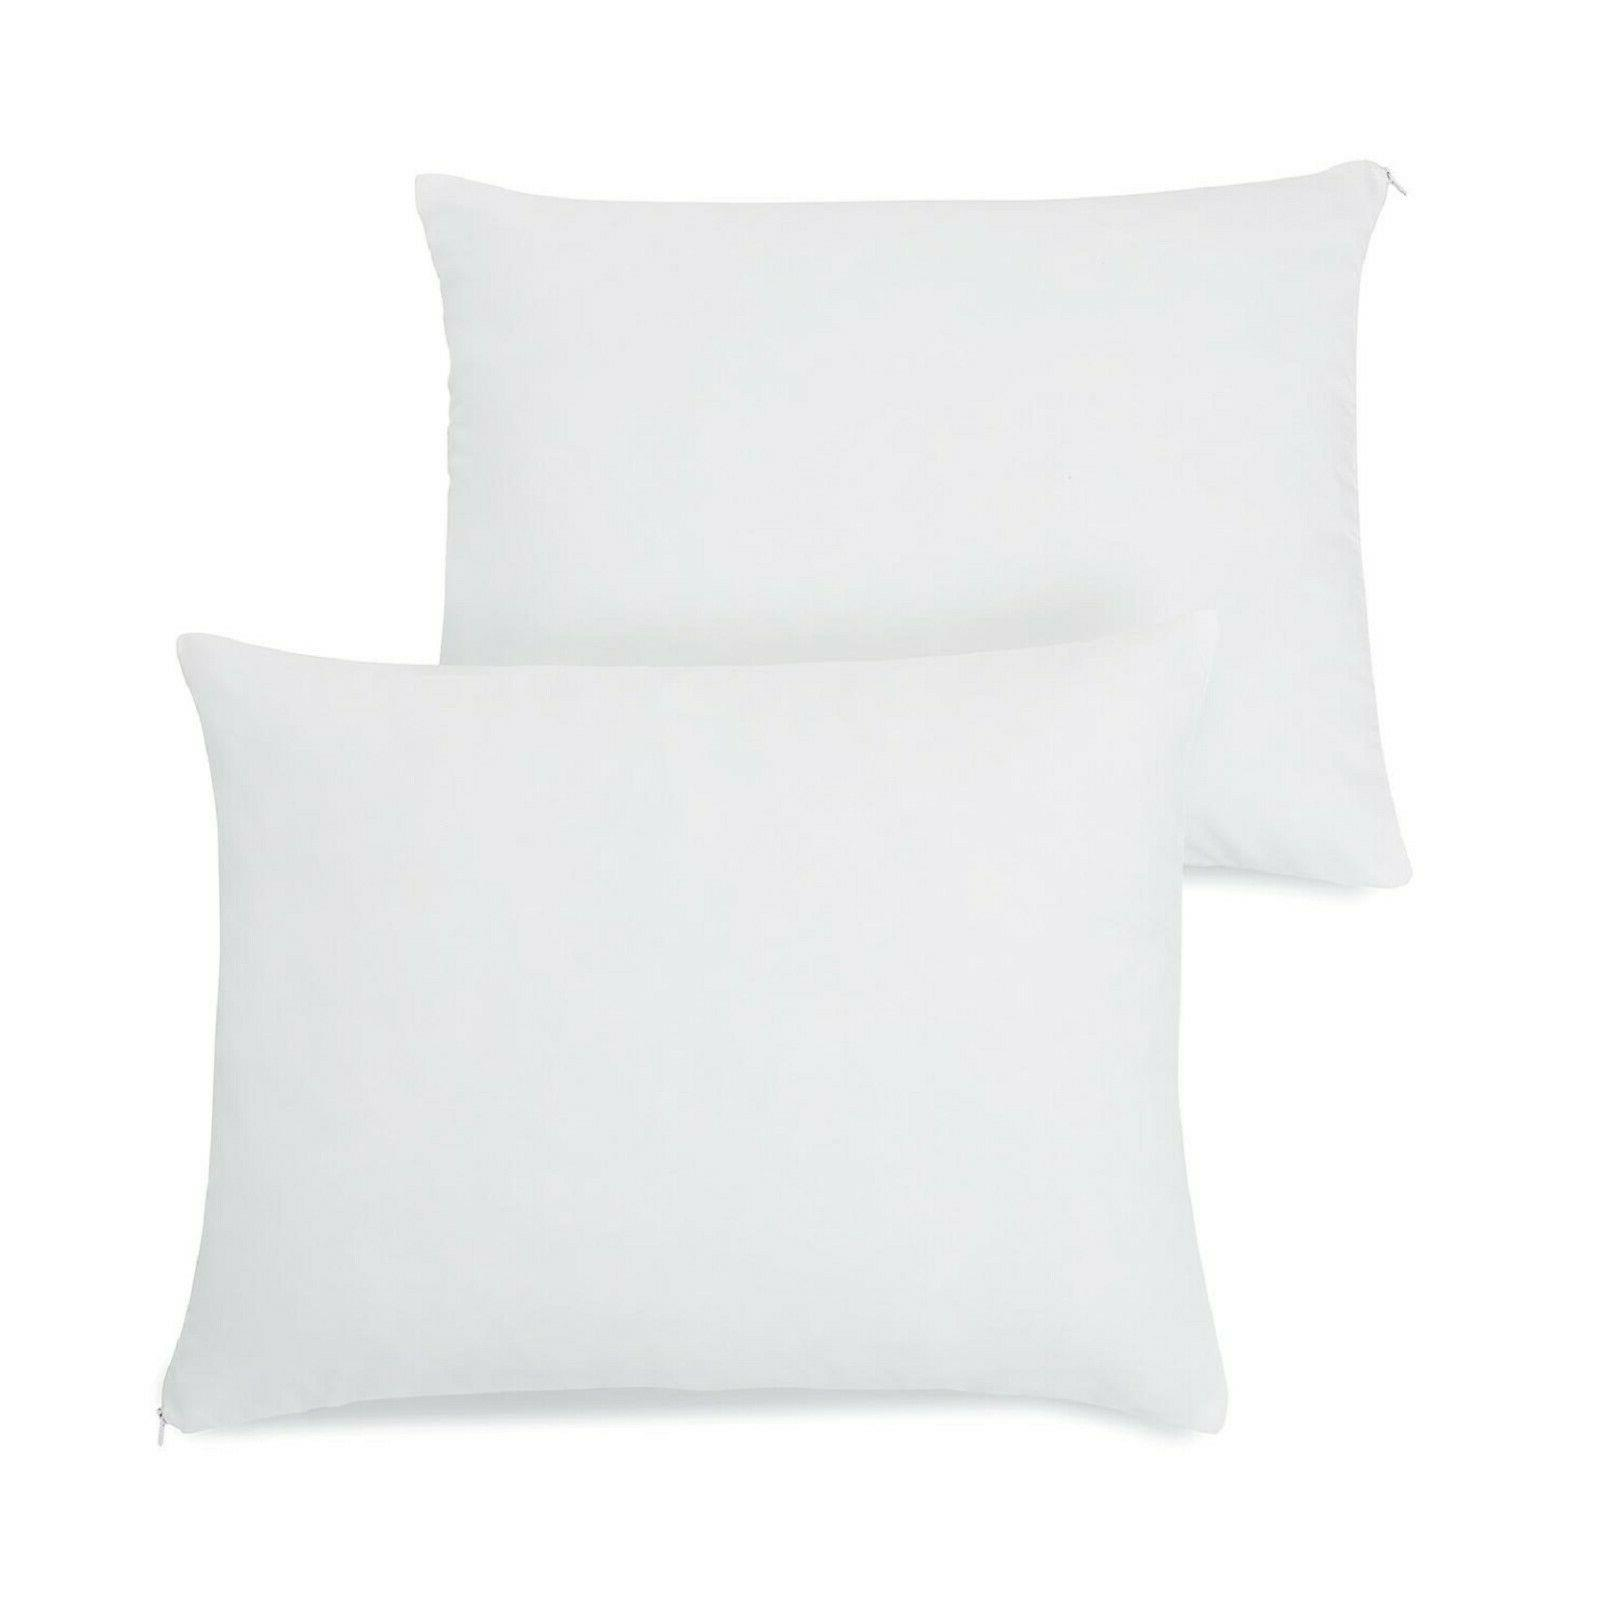 Serta Cluster Classic Bed Pillows Free